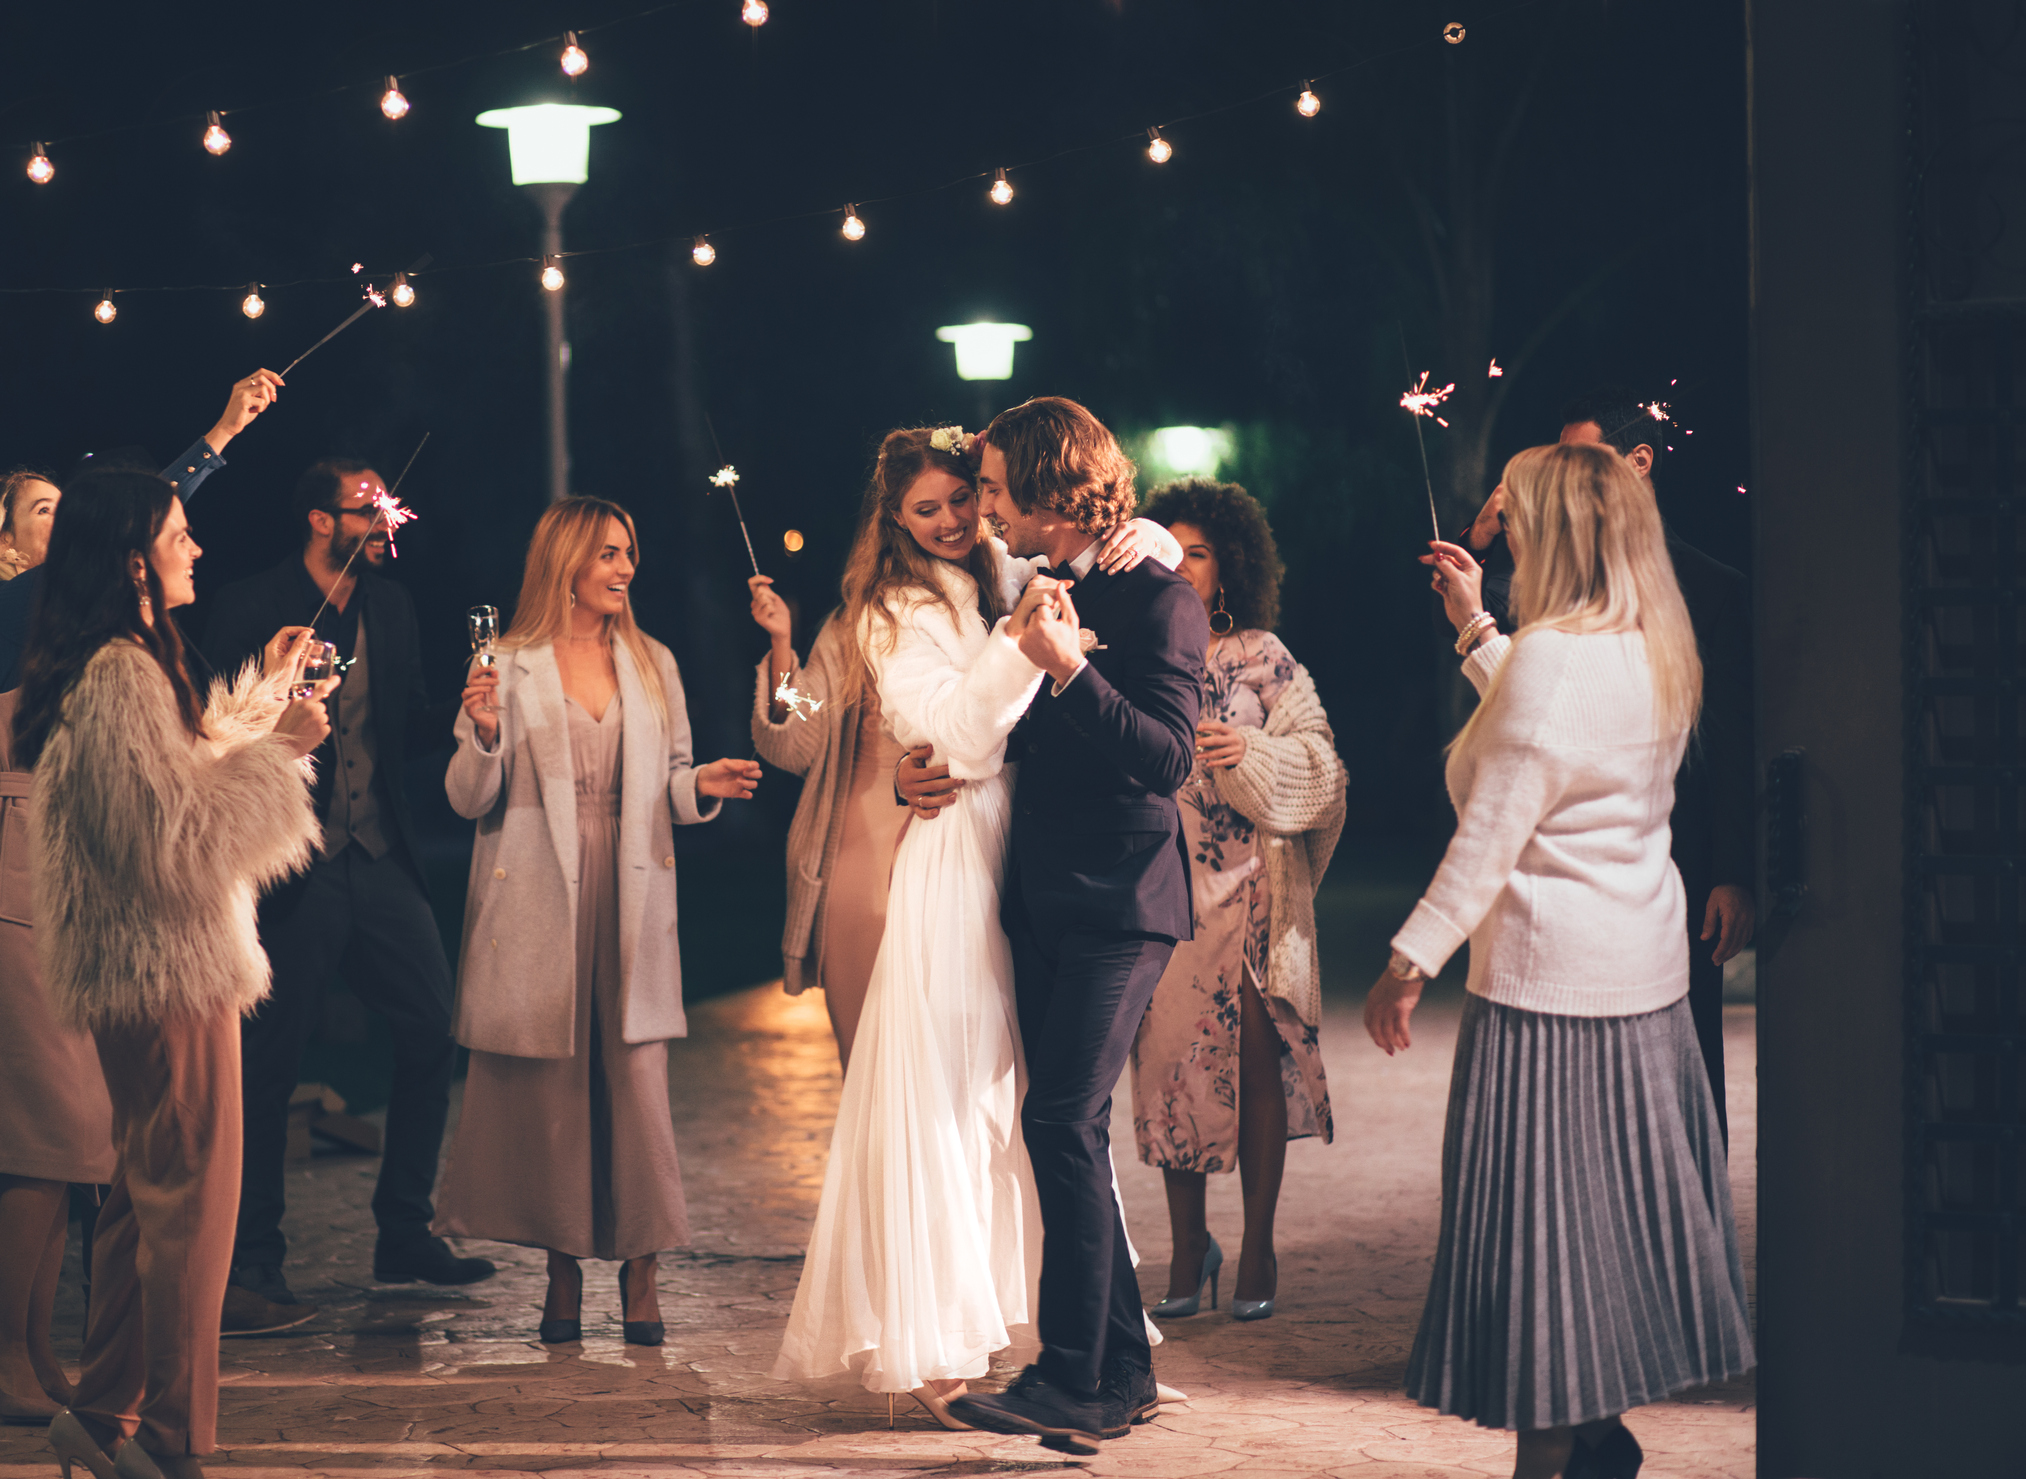 What's a Micro Wedding? Pros & Cons | Omni Hotels Blog